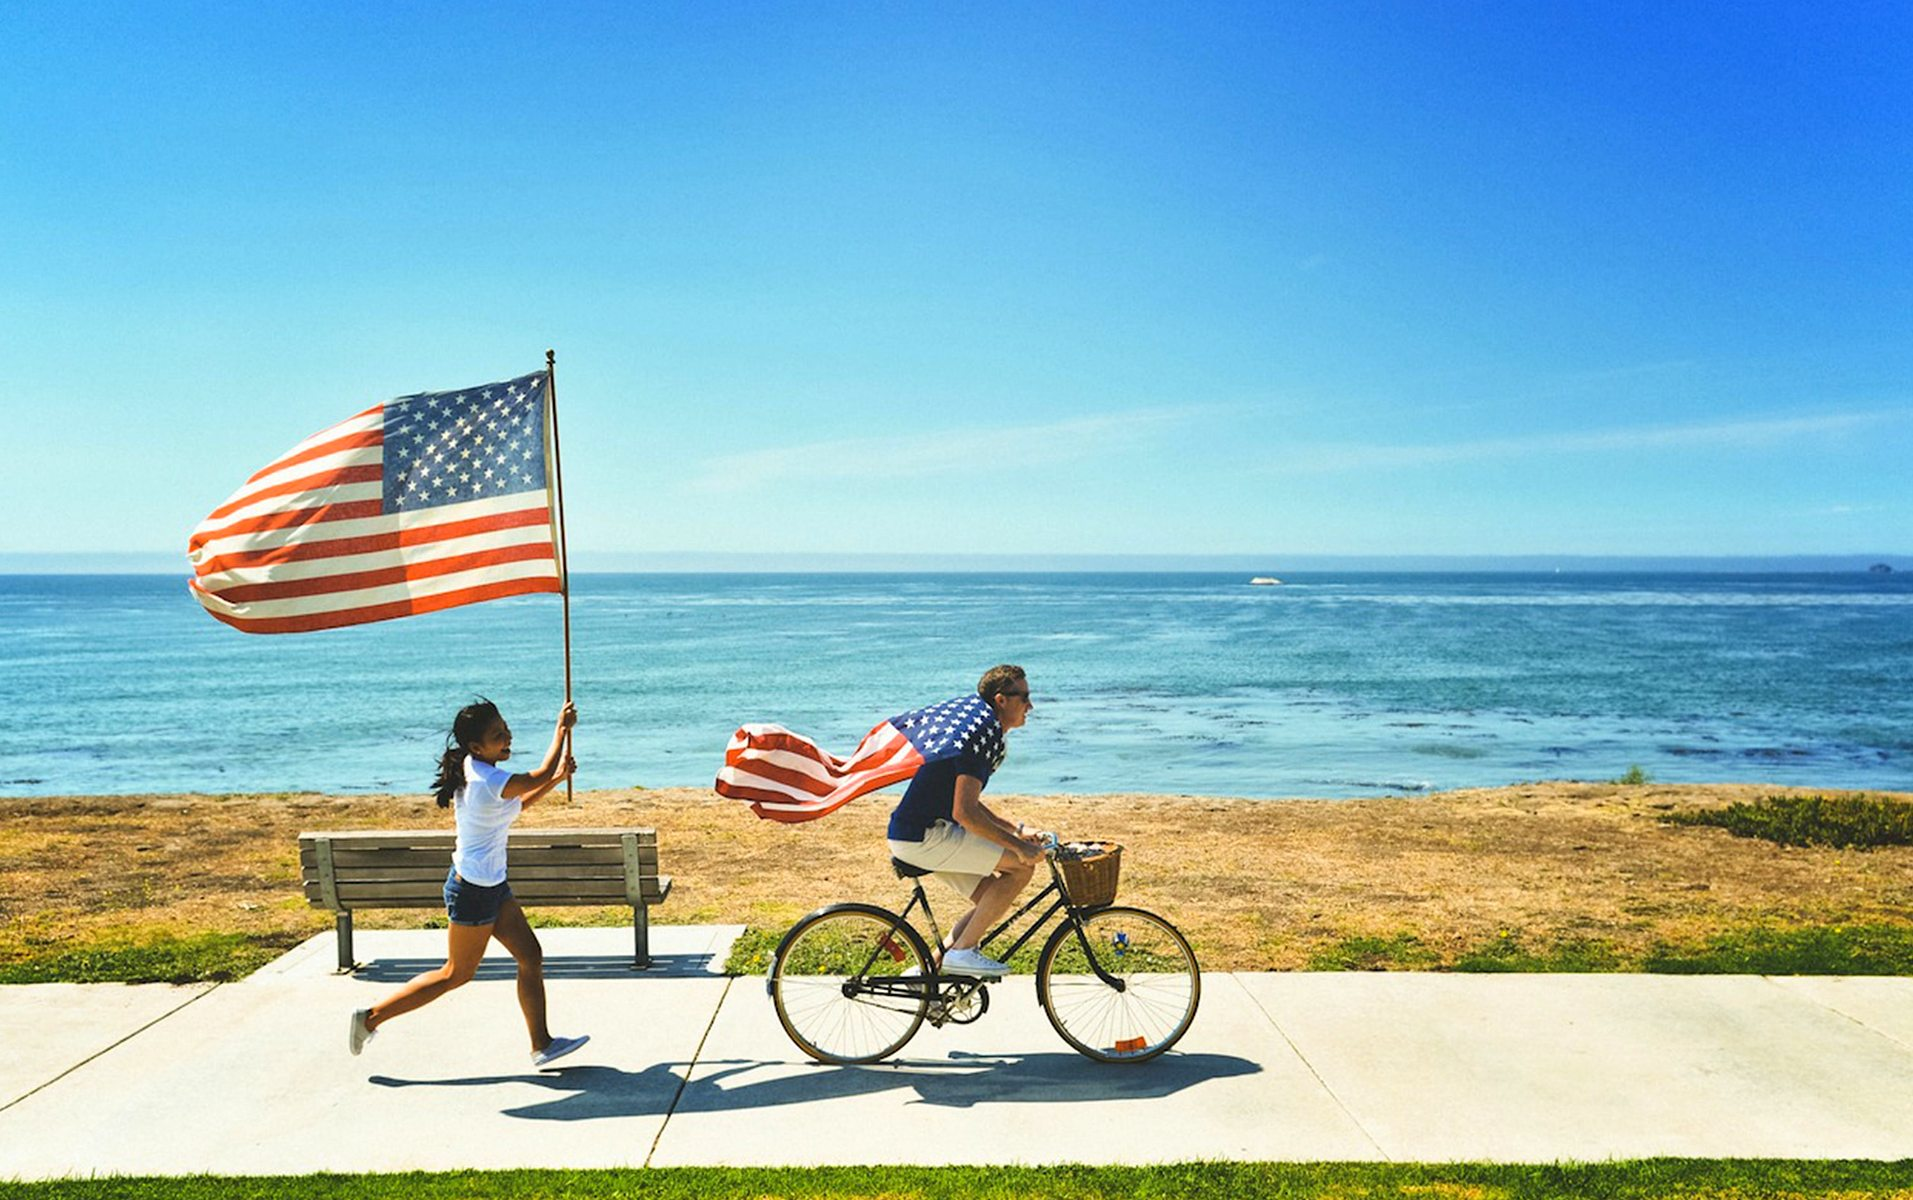 Young girl running with American flag behind man on bicycle wearing an American flag - on a boardwalk near the ocean